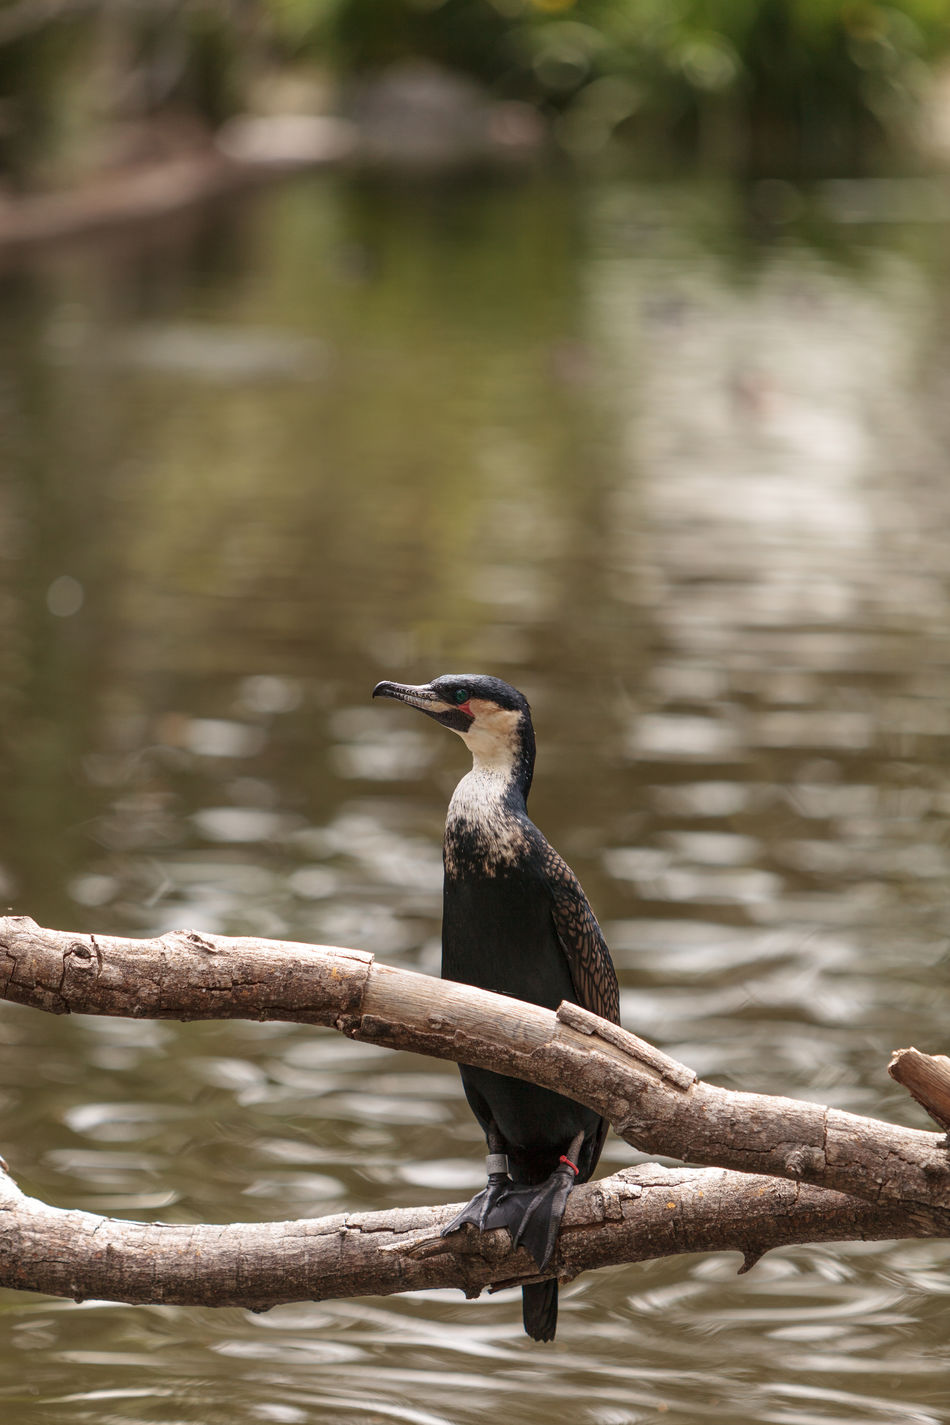 Double-crested Cormorant, Phalacrocorax auritus, is a black fishing bird found in lakes and rivers in North America Animal Animal Themes Animal Wildlife Animals In The Wild Beauty In Nature Bird Close-up Cormorant  Day Double-crested Cormorant Nature No People One Animal Outdoors Perching Phalacrocorax Auritus